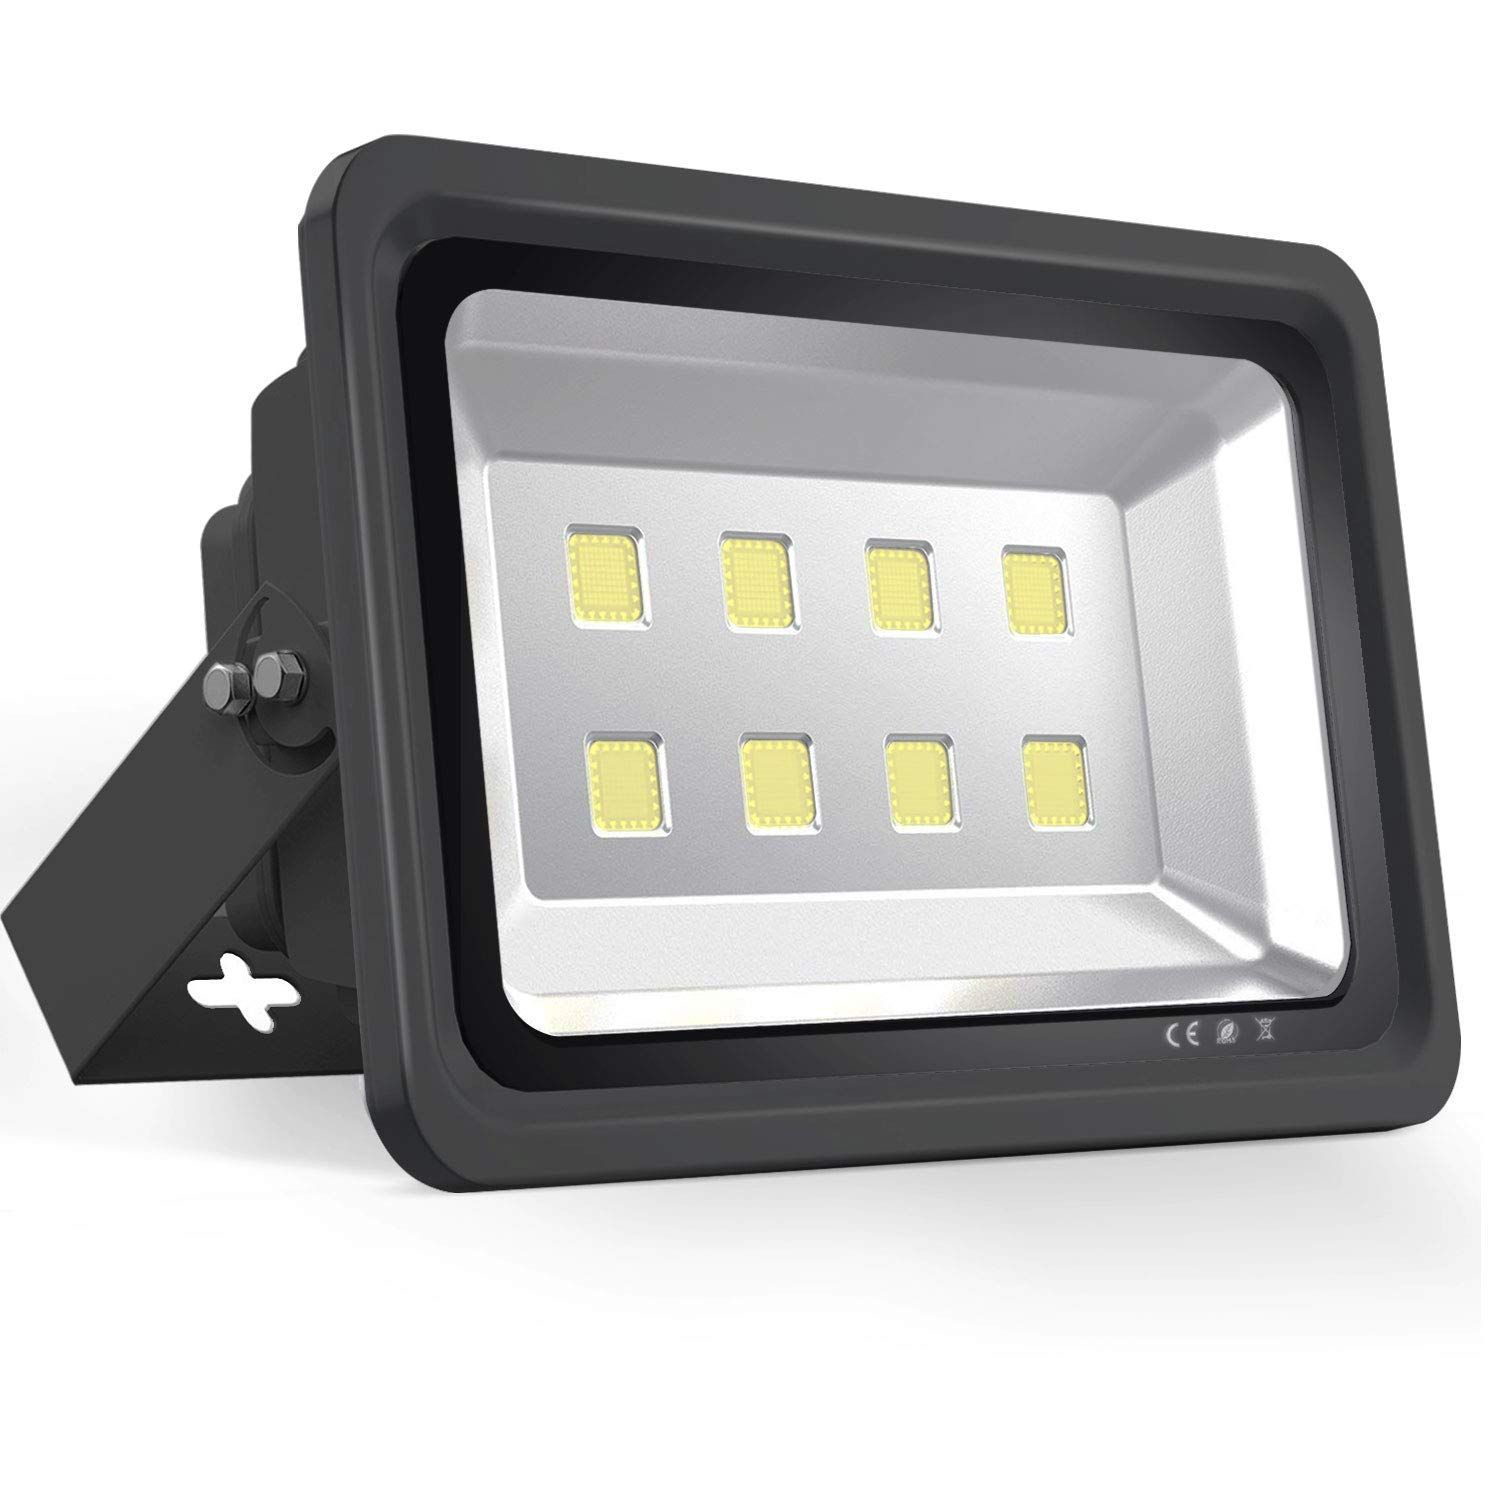 Morsen Led Flood Light 400w Ip65 Waterproof Indoor Outdoor 6000k Super Bright Security Wall Light For Garden Basketba Led Flood Lights Led Flood Flood Lights